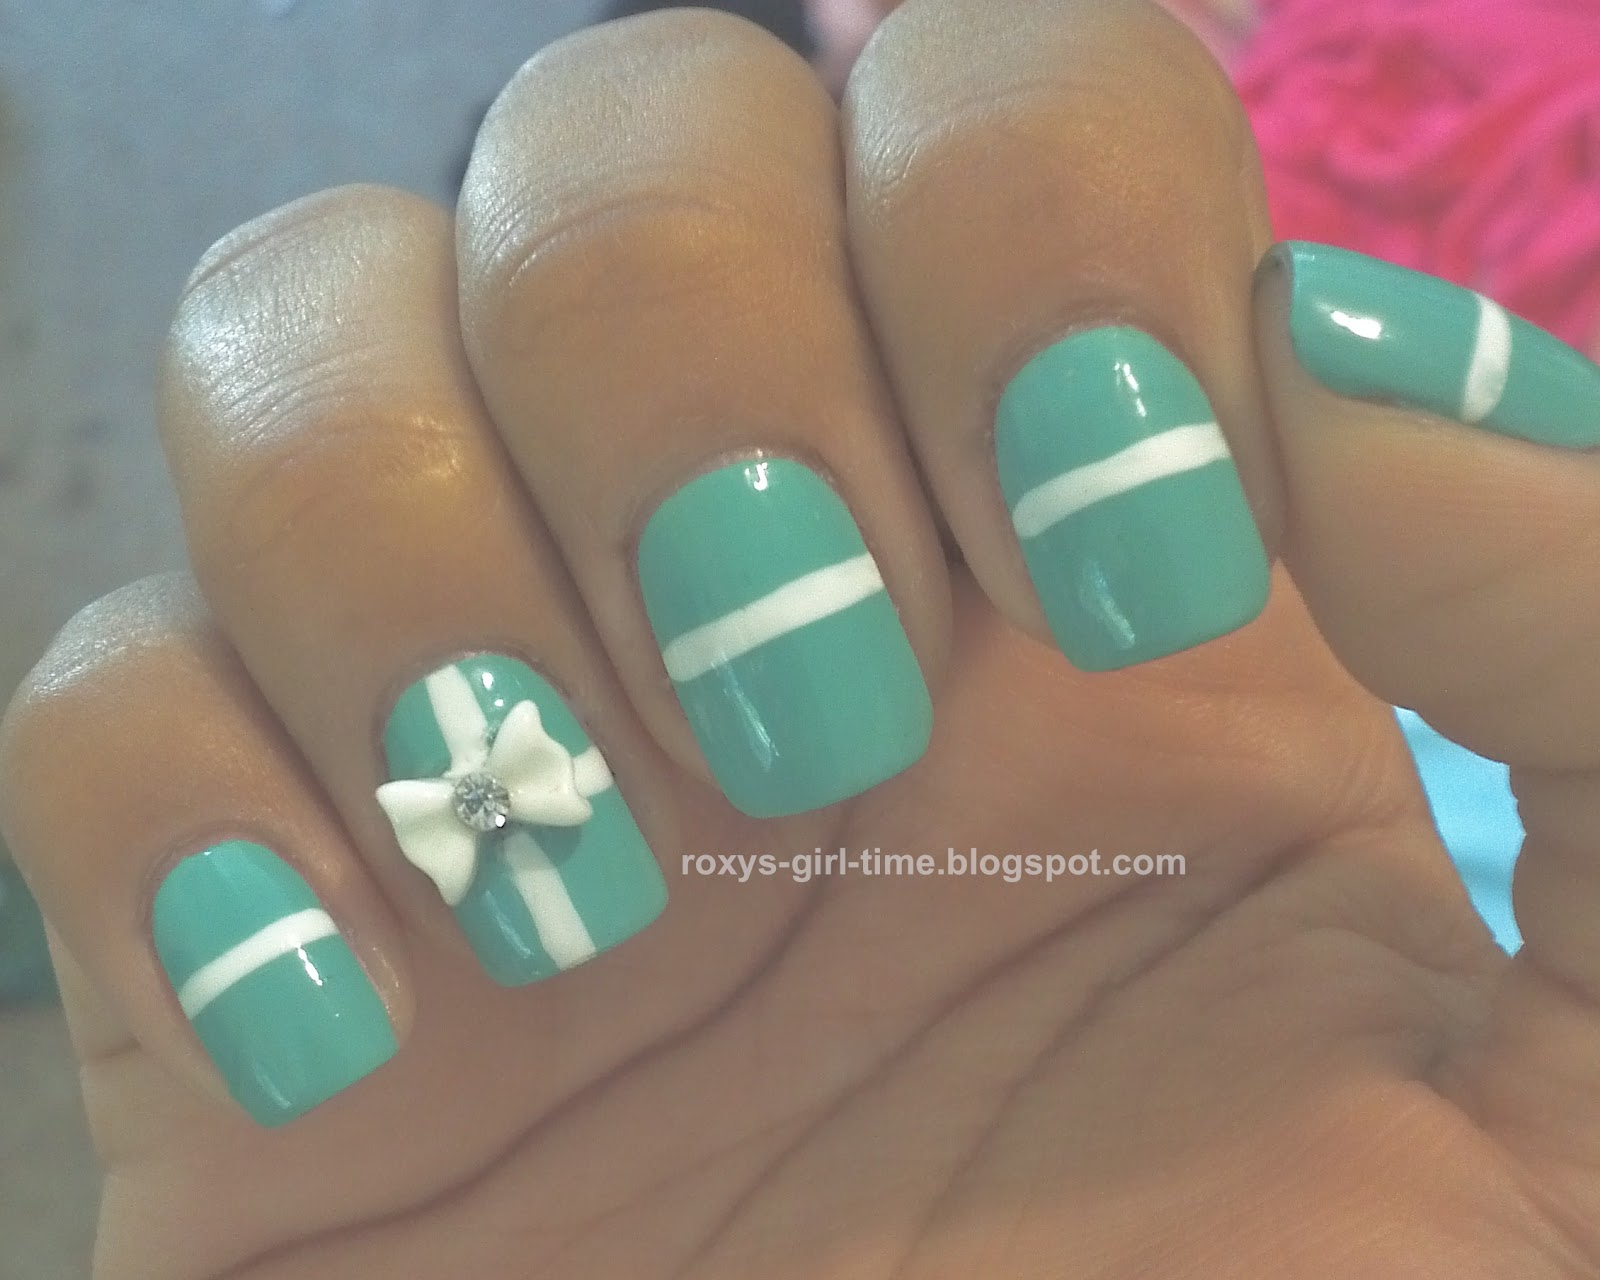 Roxy S Girl Time Notd Tiffany Manicure